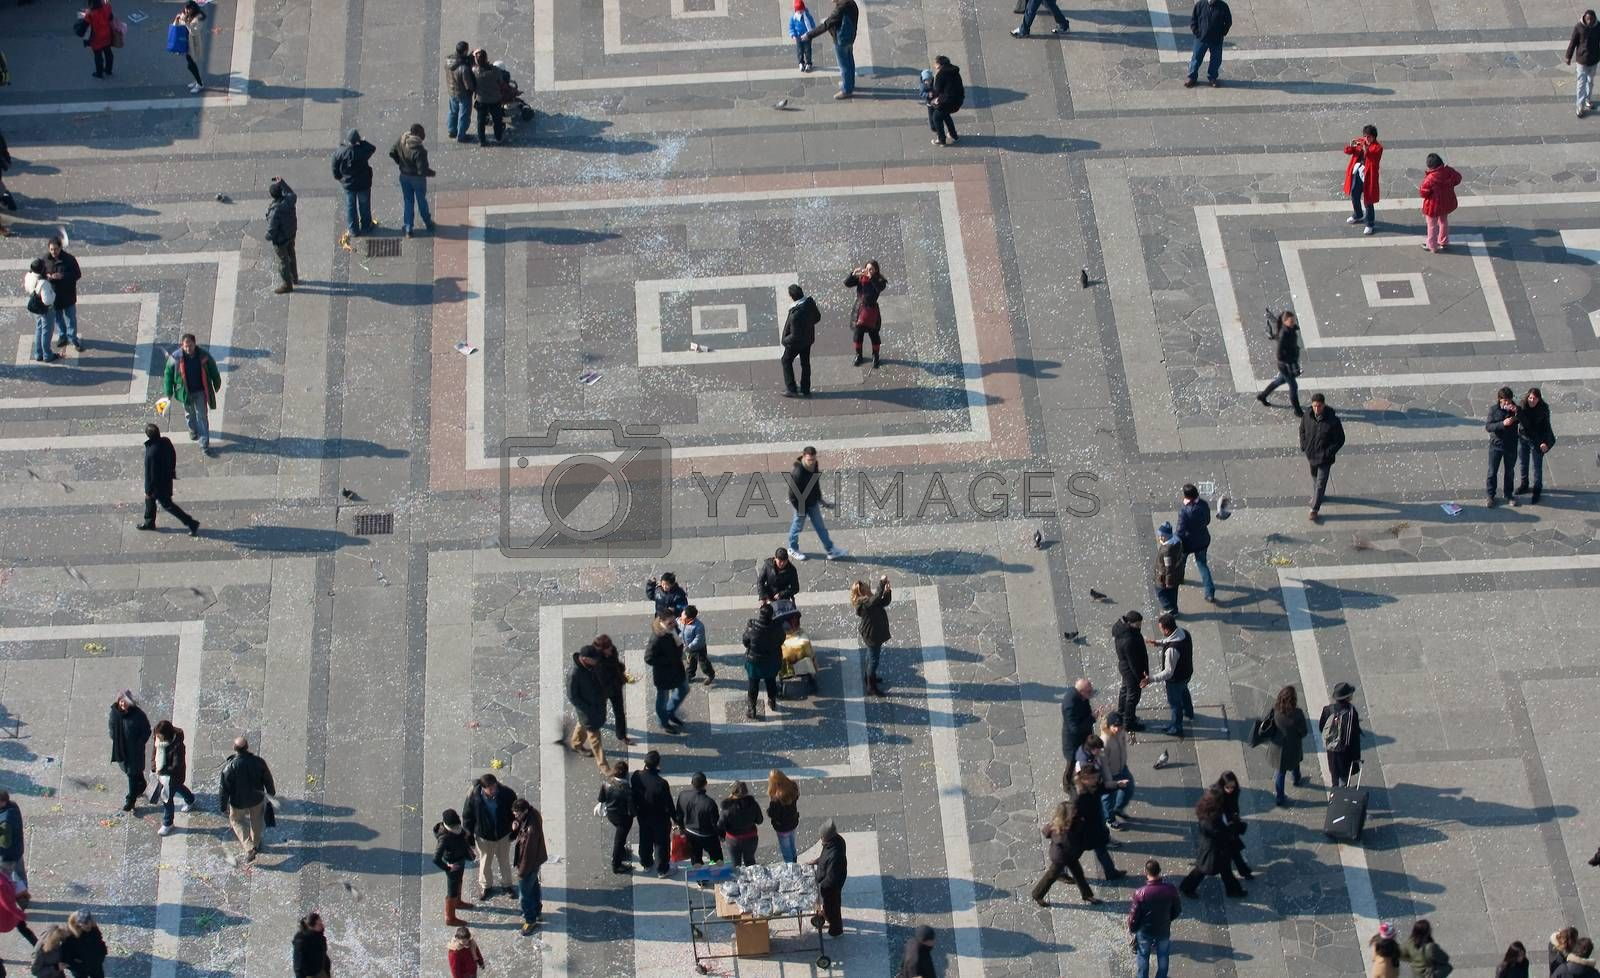 MILAN, ITALY - FEBRUARY, 13: Top view of people in the Piazza Duomo from Milan cathedral on February 13, 2010